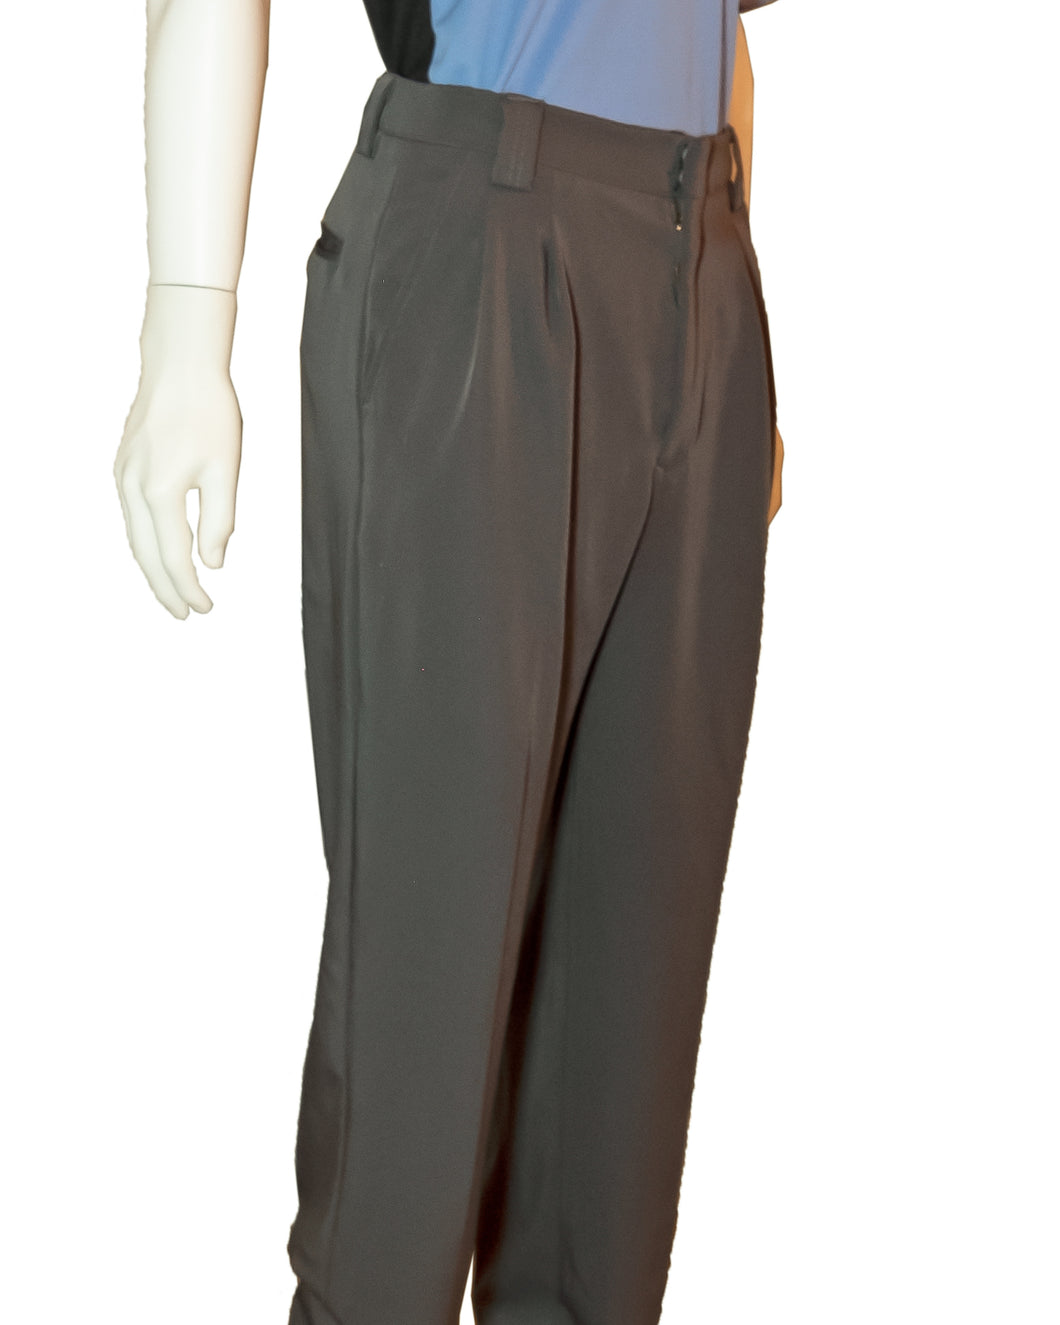 Officials Depot Poly Spandex Umpire Plate Pants - Charcoal Gray BLL6.2 - Officials Depot